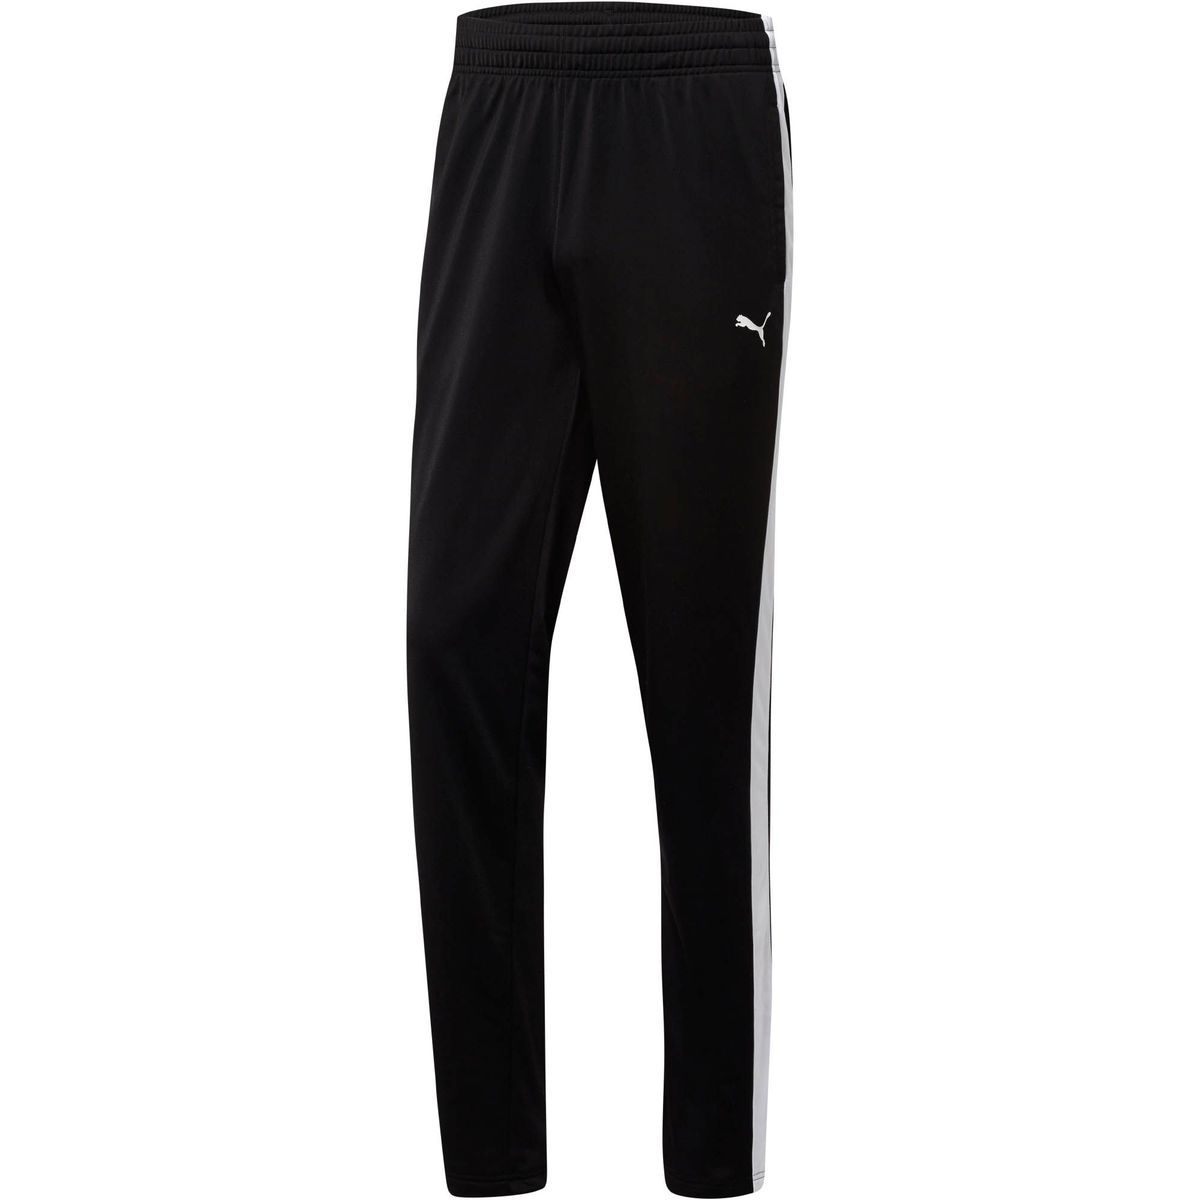 Puma Men's Contrast Open Pant - Black, L